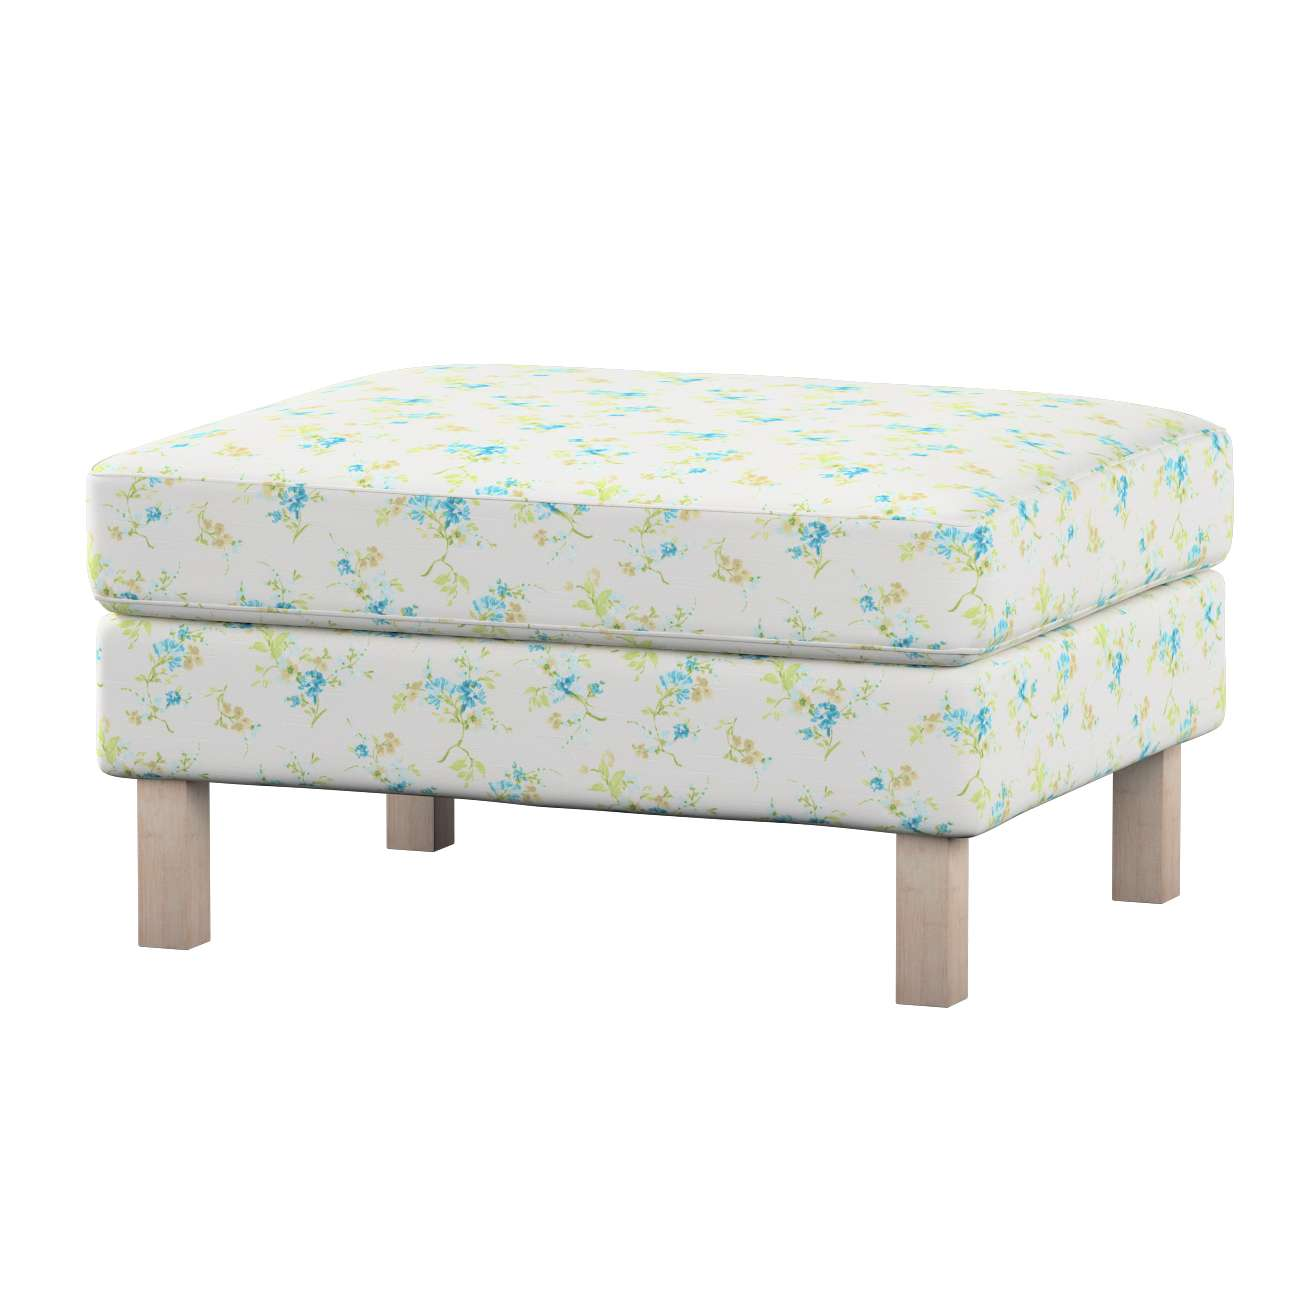 Karlstad footstool cover Karlstad footstool cover in collection Mirella, fabric: 141-16